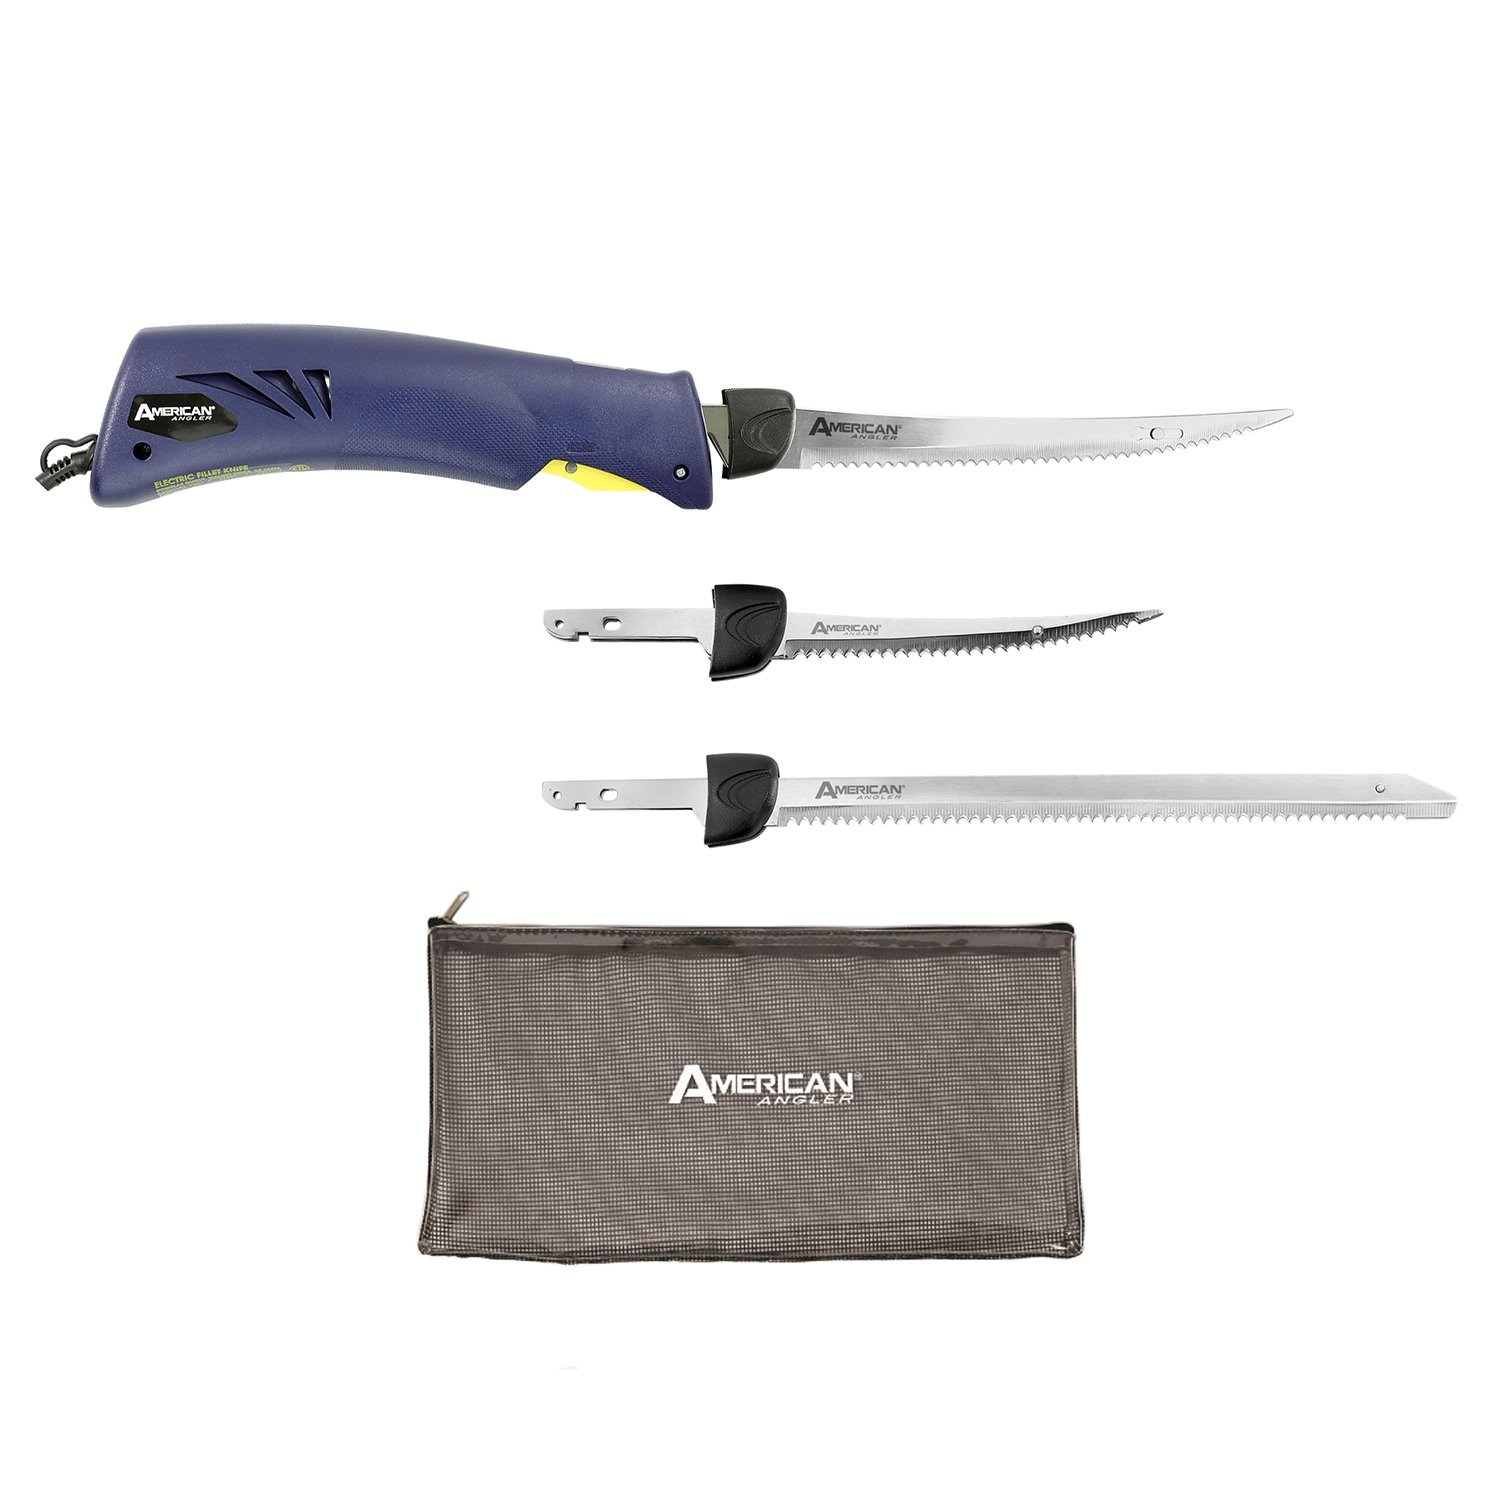 American Angler Classic Heavy Duty Electric Fillet Knife Precision Kit – 110 Volt High Performance Motorized Handset with Two Curved and One Straight Stainless Steel Freshwater Replacement Blades, 31451DS